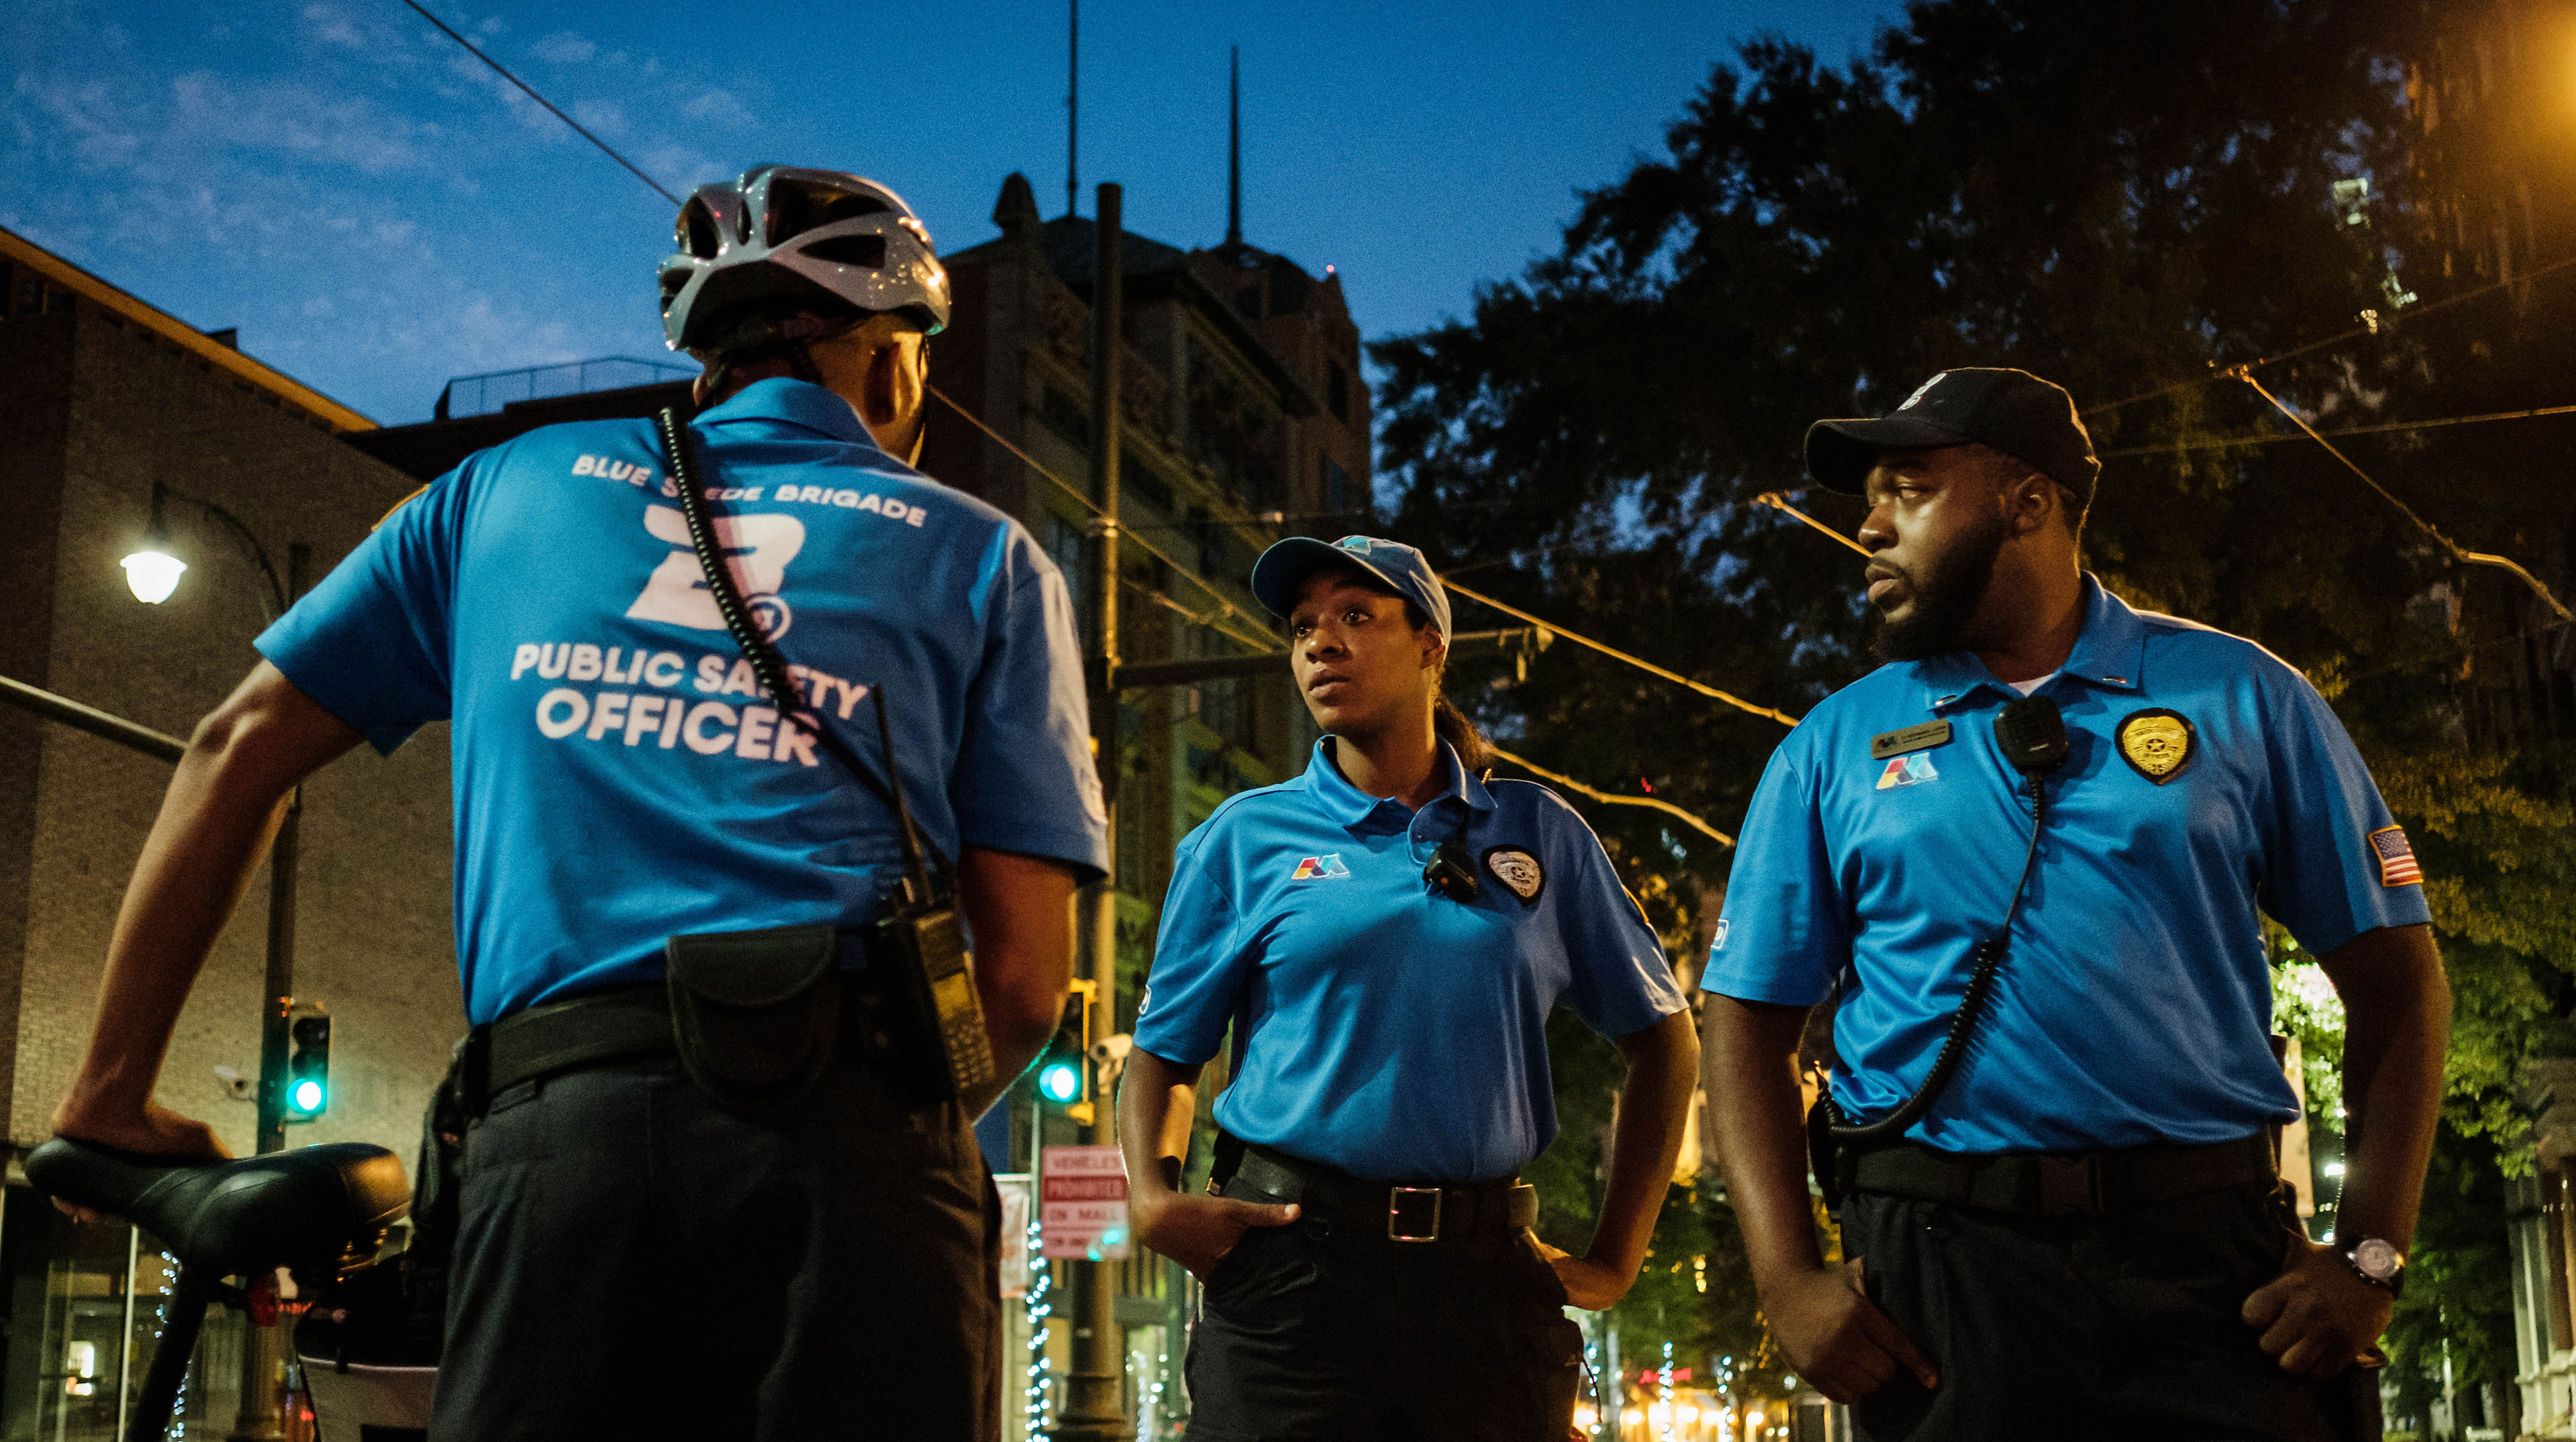 In response to a reduction in police officers, the Blue Suede Brigade, a private security force, patrols the tourist areas in Memphis. From left, Blue Suede Brigade members Kcbena Cash, Tamala Johnson and Nathaniel Lewis worked the night shift.